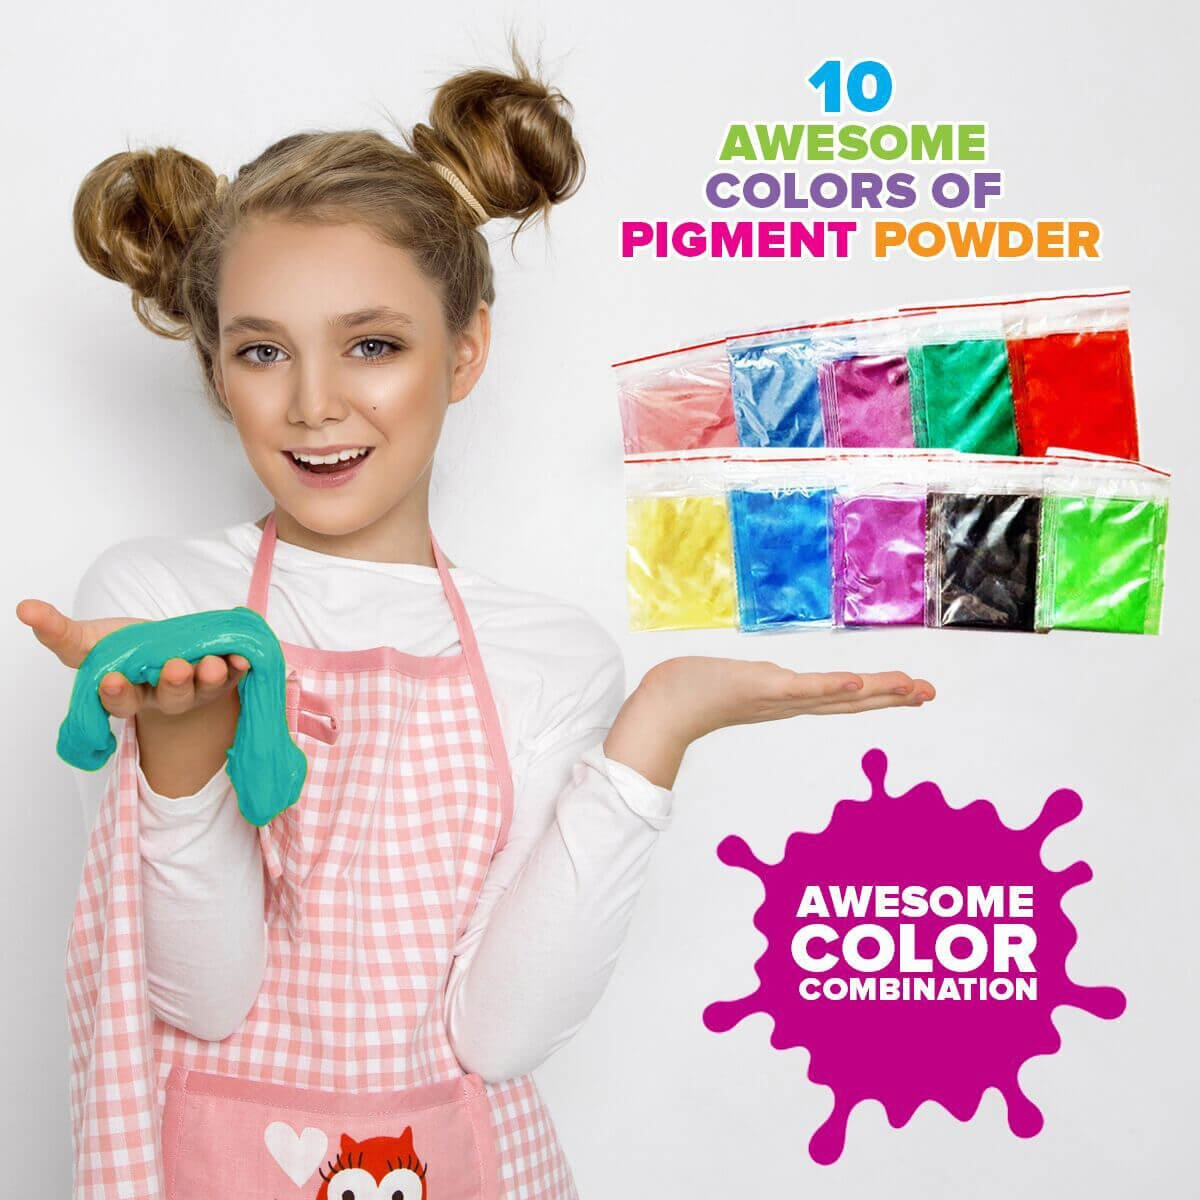 Ultimate Slime Kit for Girls and Boys | Slime Kit with Slime Supplies | Complete DIY Slime Making Kit | Includes Slime Ingredients, 10 Colors, 8 Different Add-Ins | Colorful Slime Kits for Family Fun by Lily and Lee's Craft Accessories Shoppe (Image #3)